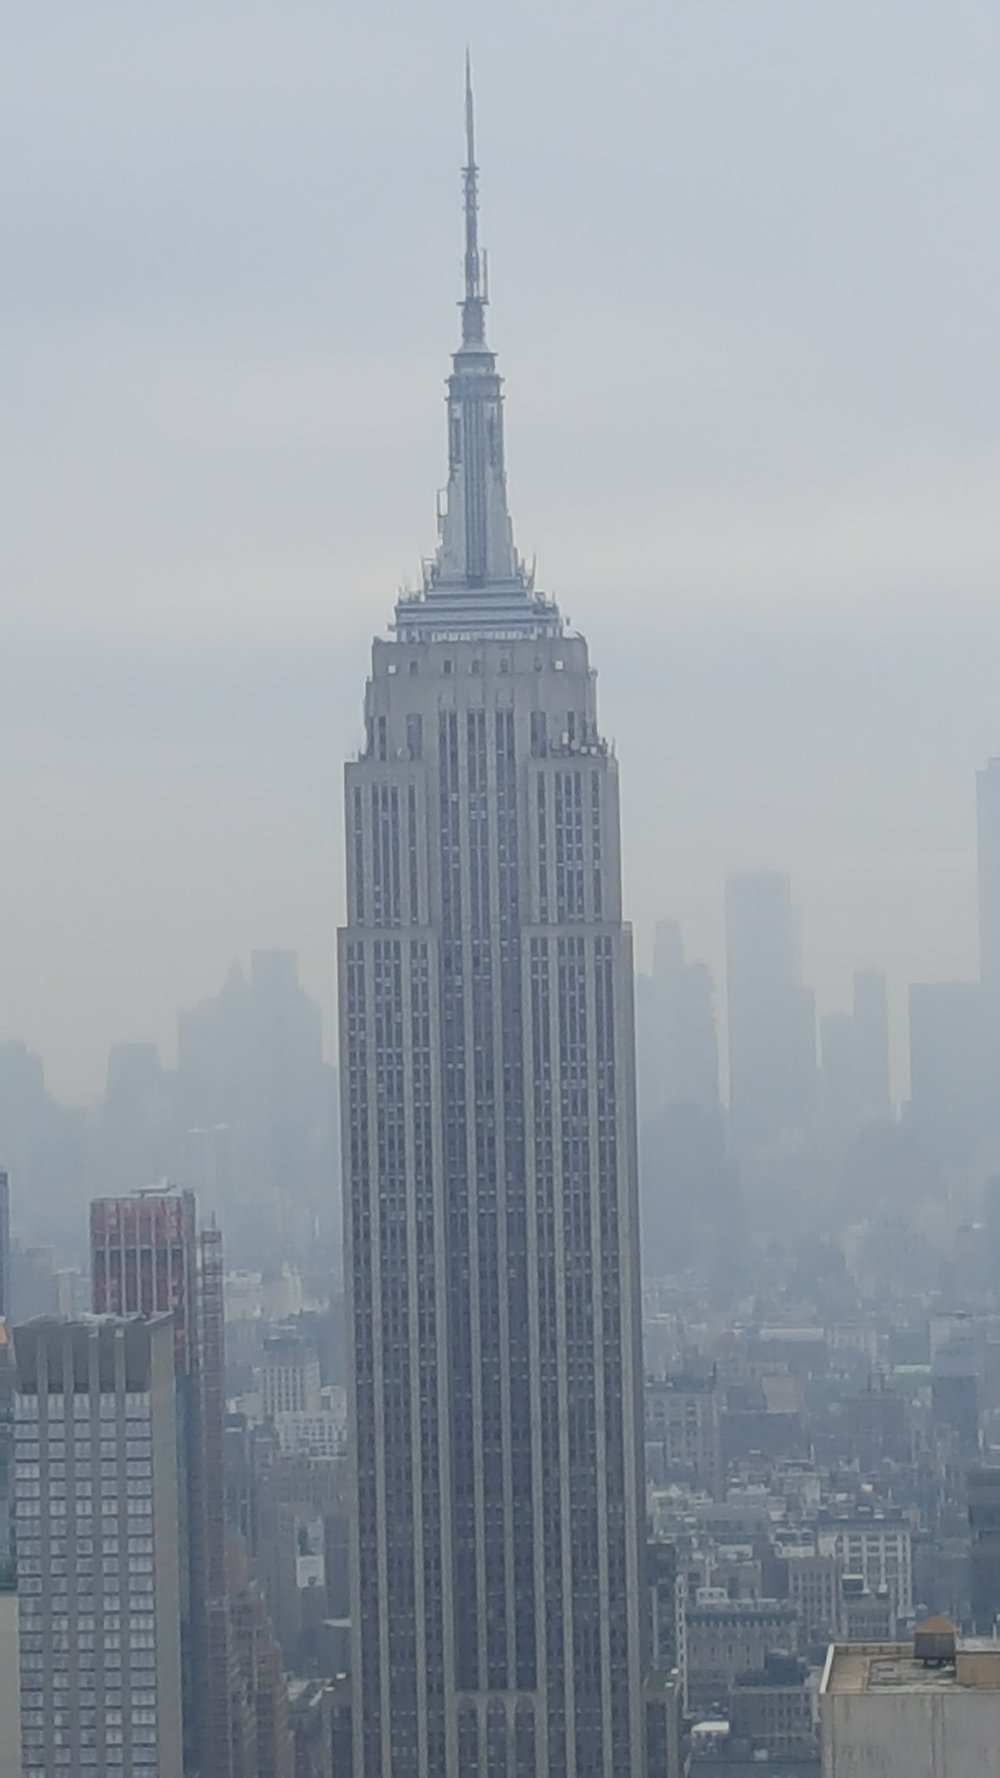 Speaking of the Empire State Building - did you know the Observation Deck generates more revenue than all of the offices COMBINED??? And imagine how expensive it would be to have your company address listed in the Empire State Building.